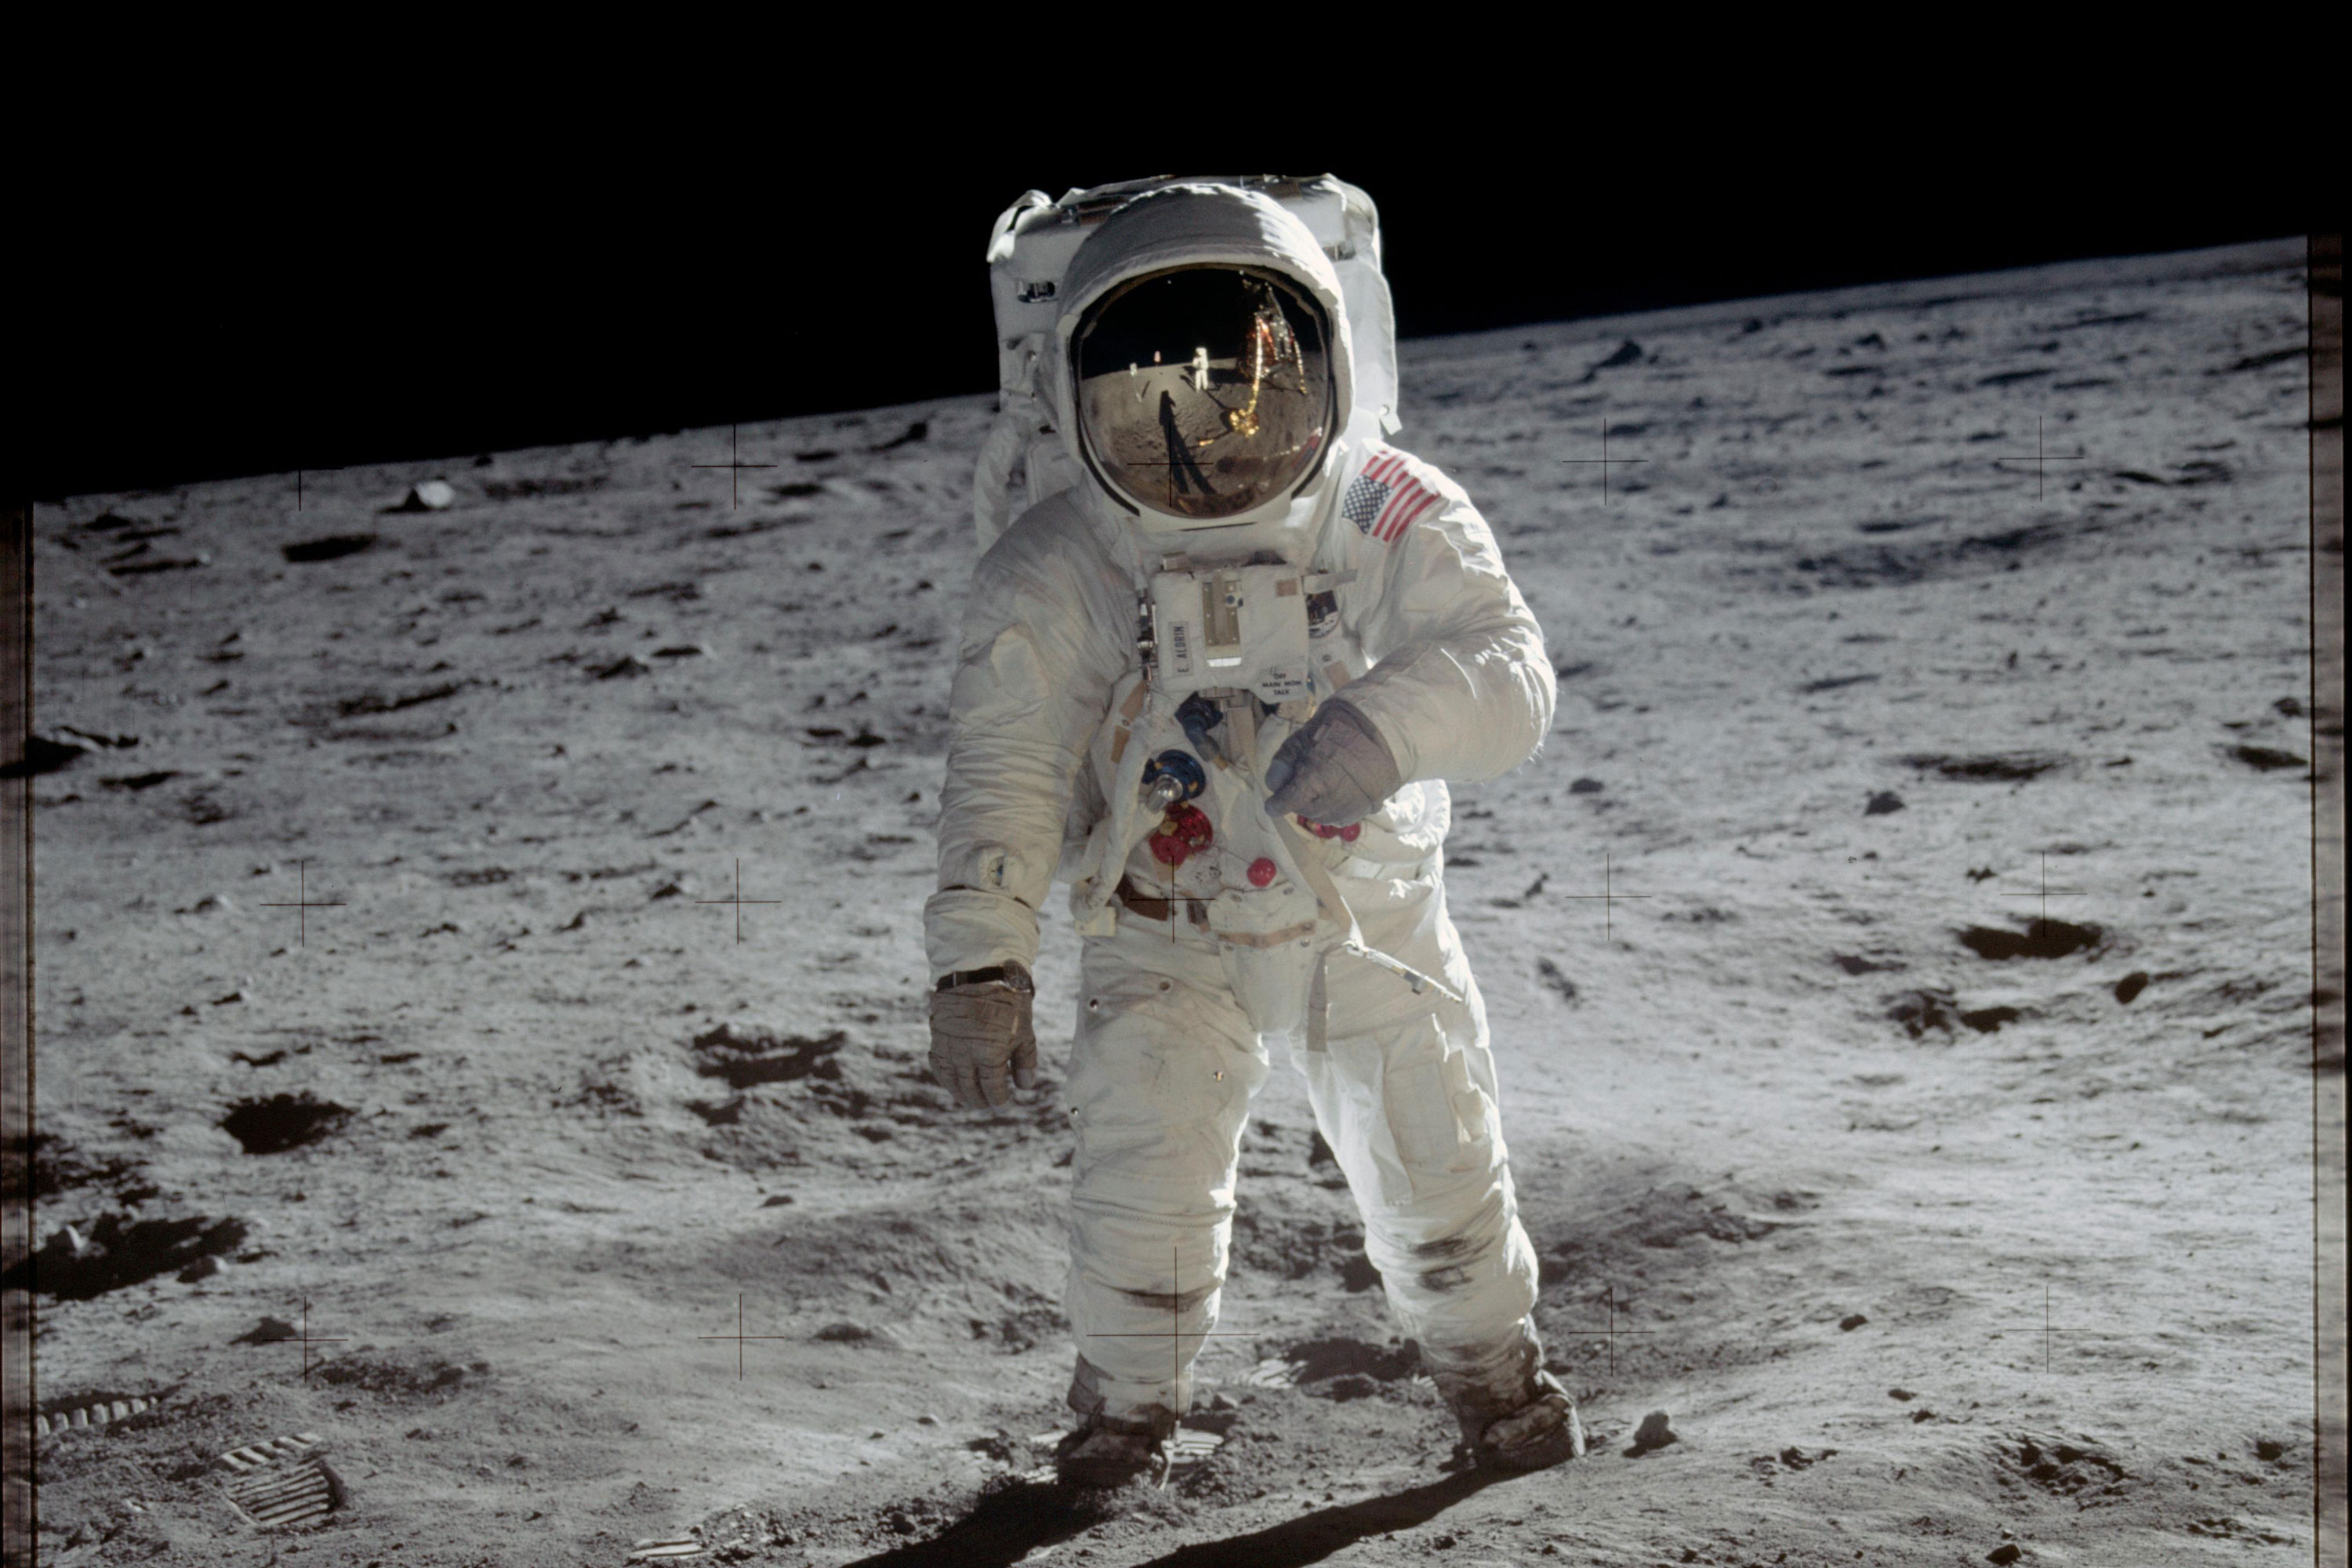 """On July 20, 1969, astronauts Neil Armstrong and """"Buzz"""" Aldrin were the first people to walk on the moon. Aldrin is pictured here."""